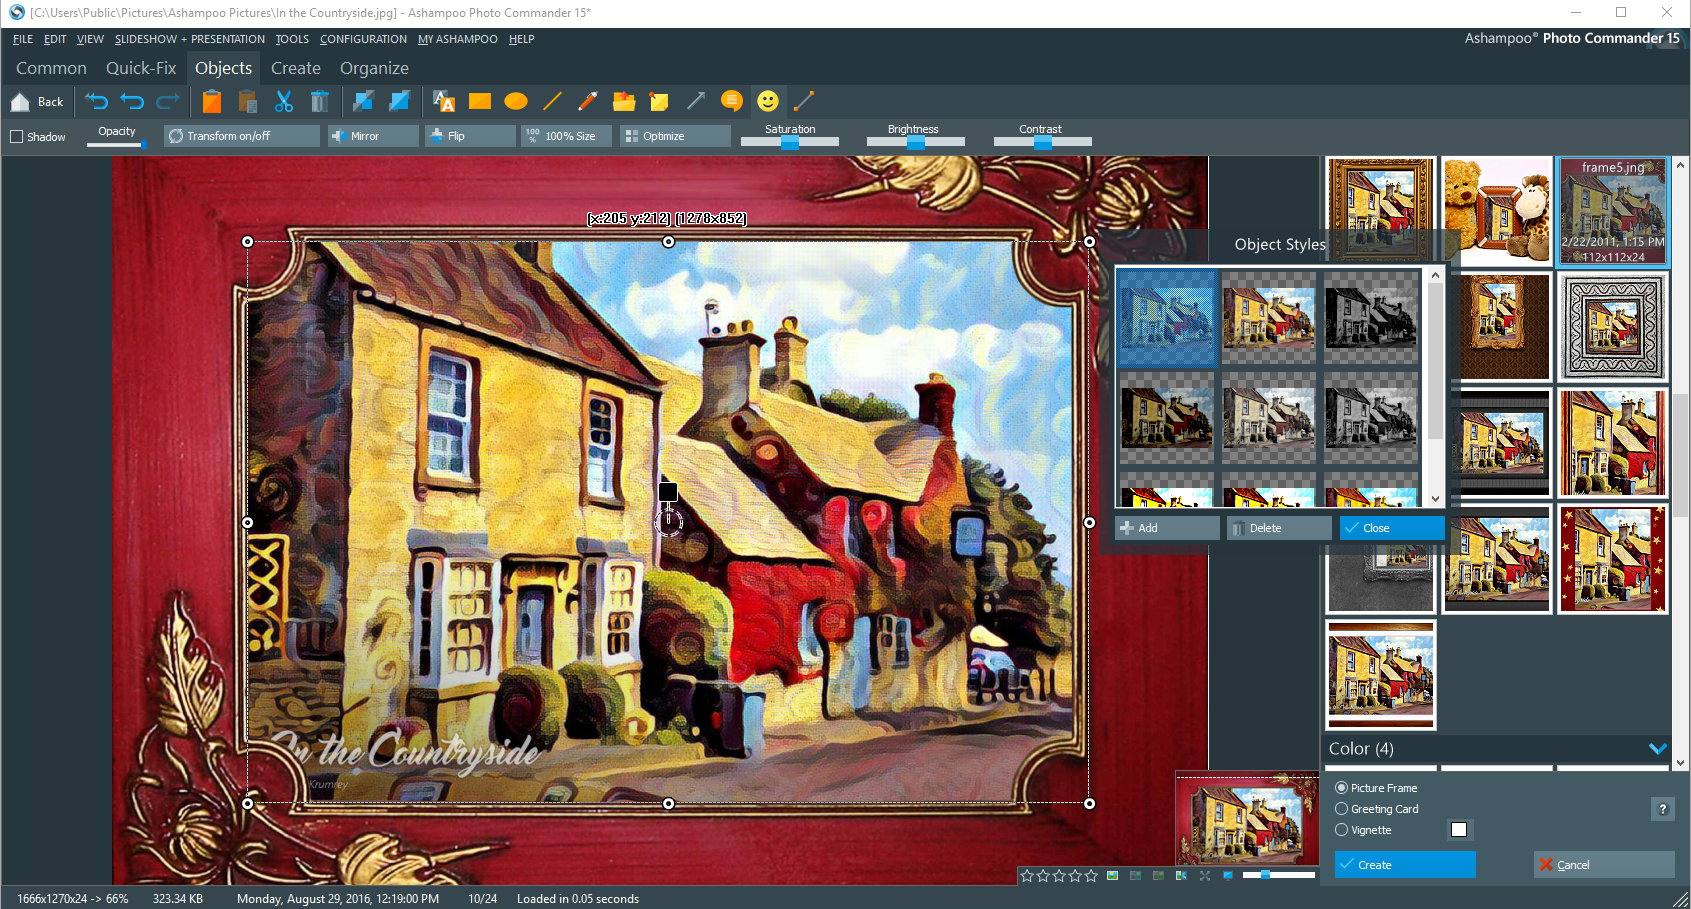 Amazon ashampoo photo commander 15 5 pc family license amazon ashampoo photo commander 15 5 pc family license download software kristyandbryce Image collections